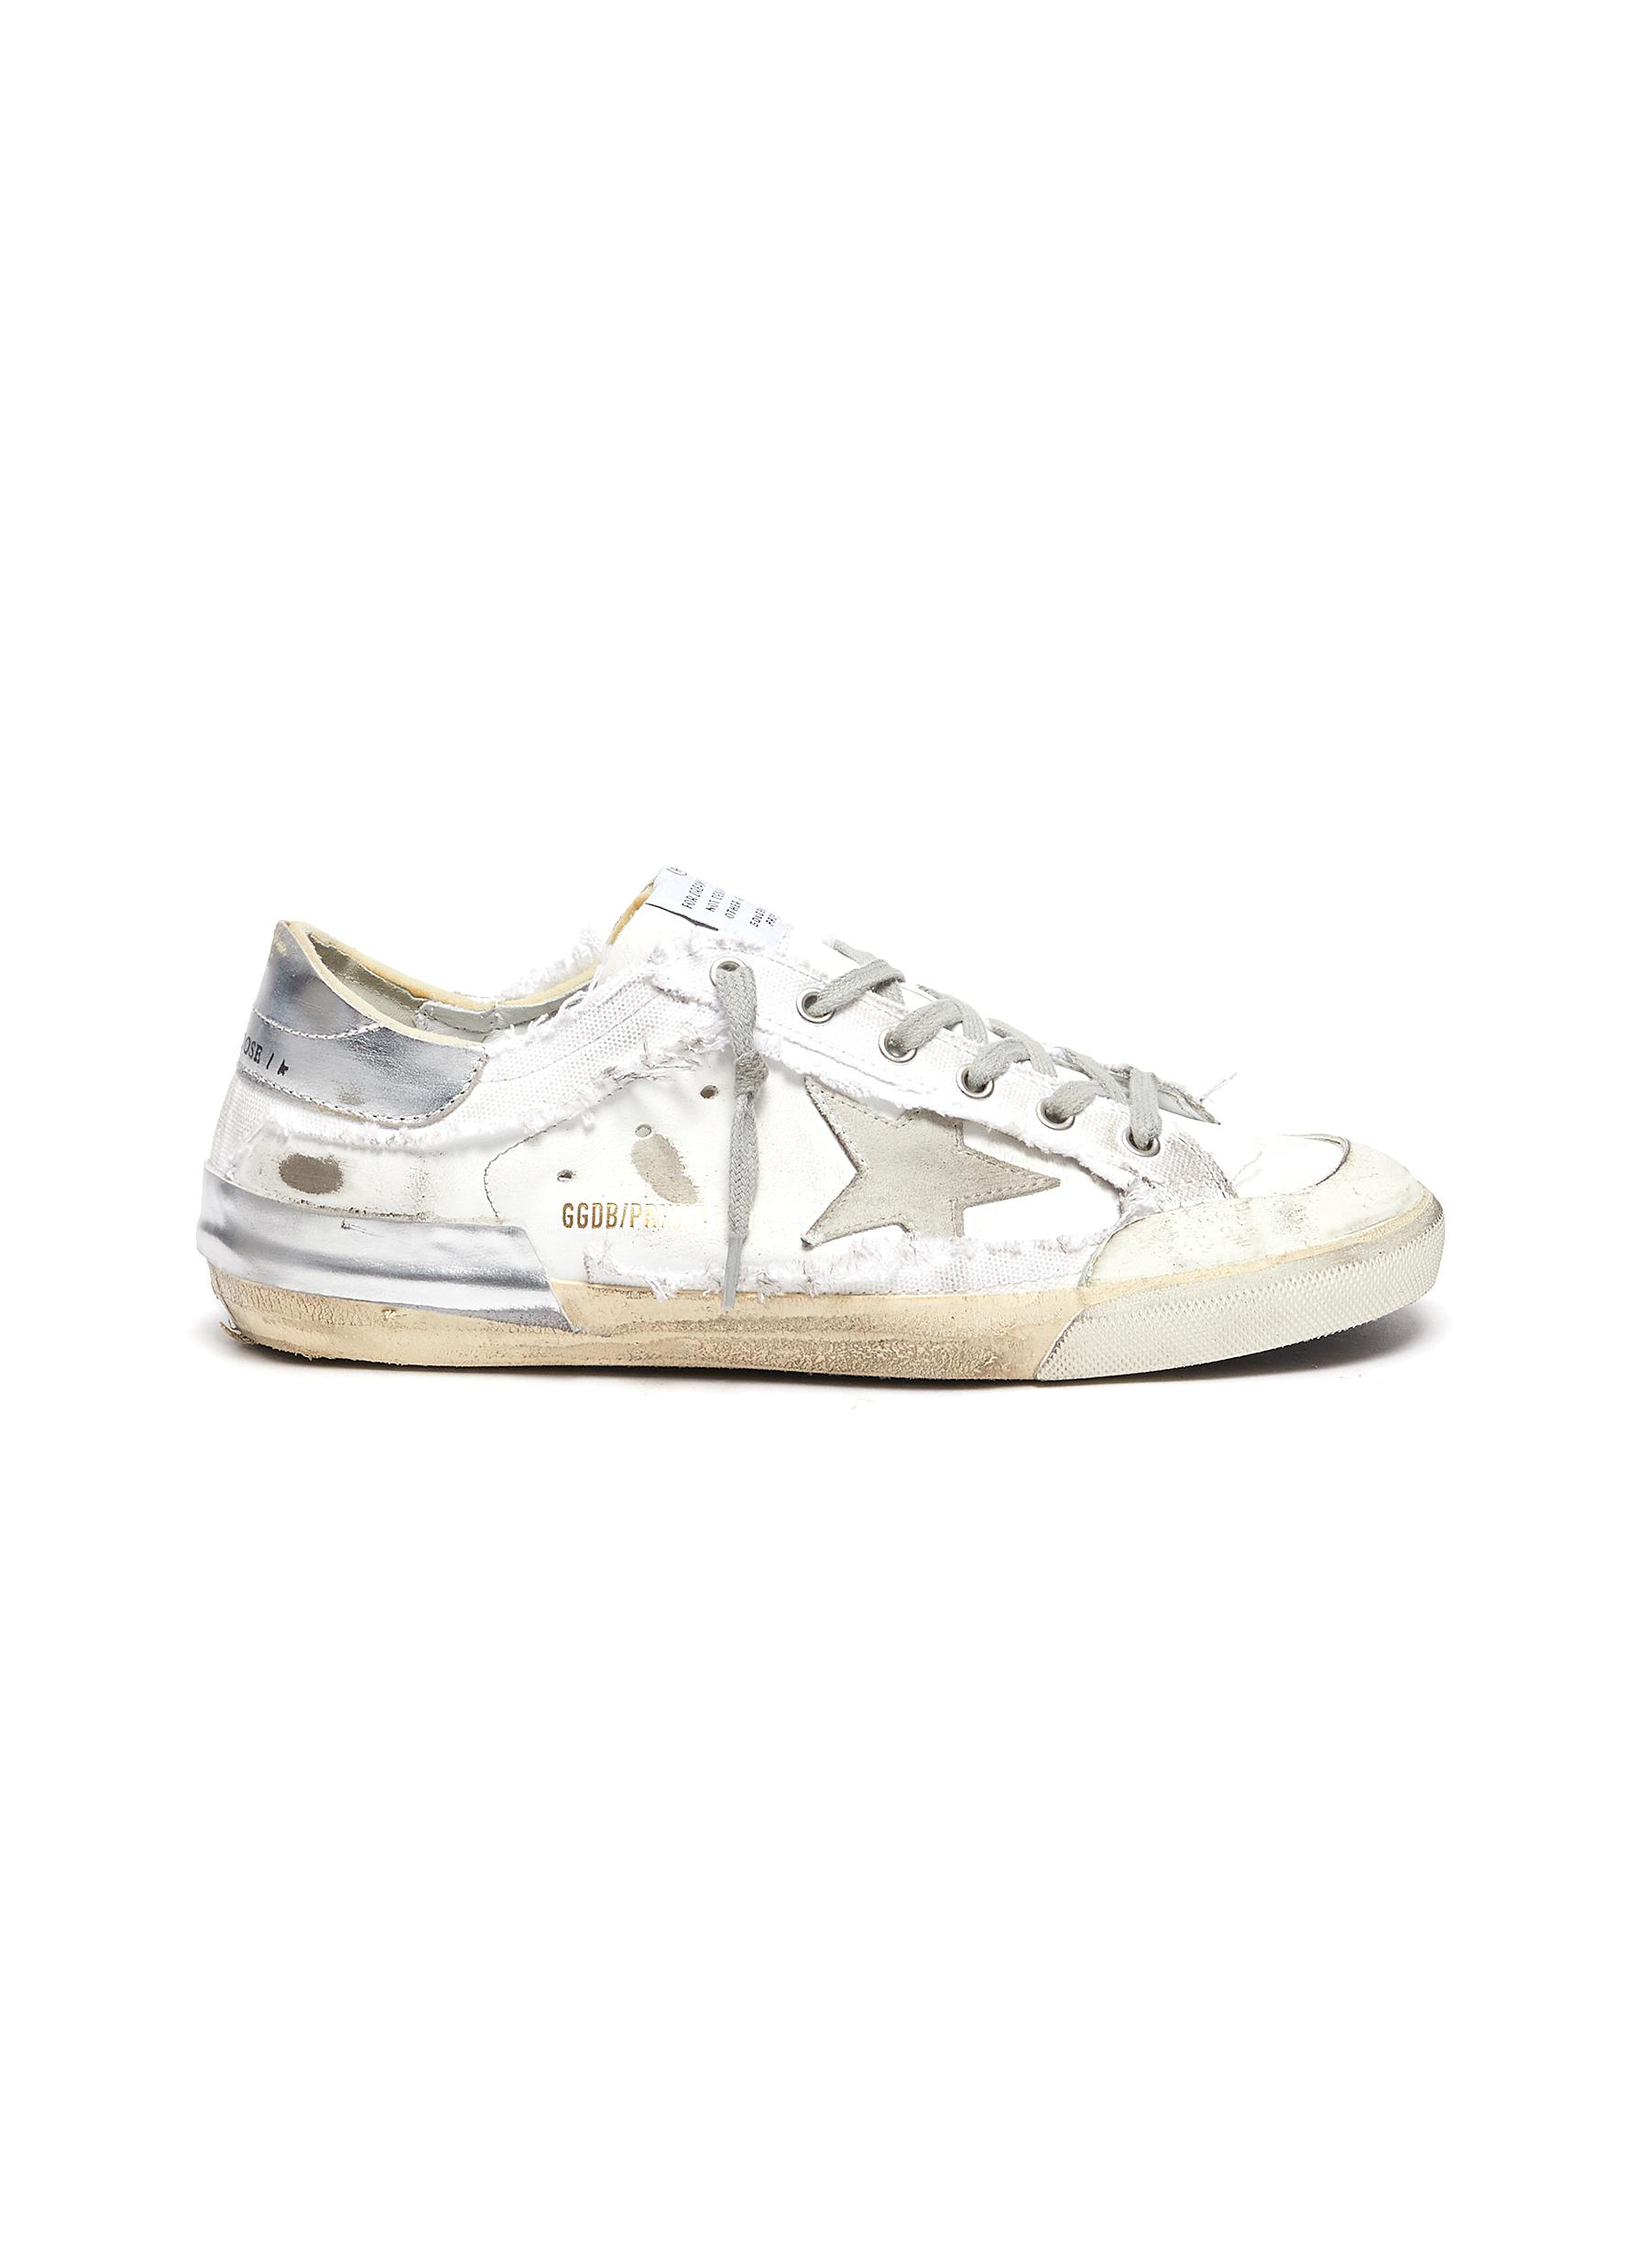 Superstar' deconstructed lace-up sneakers